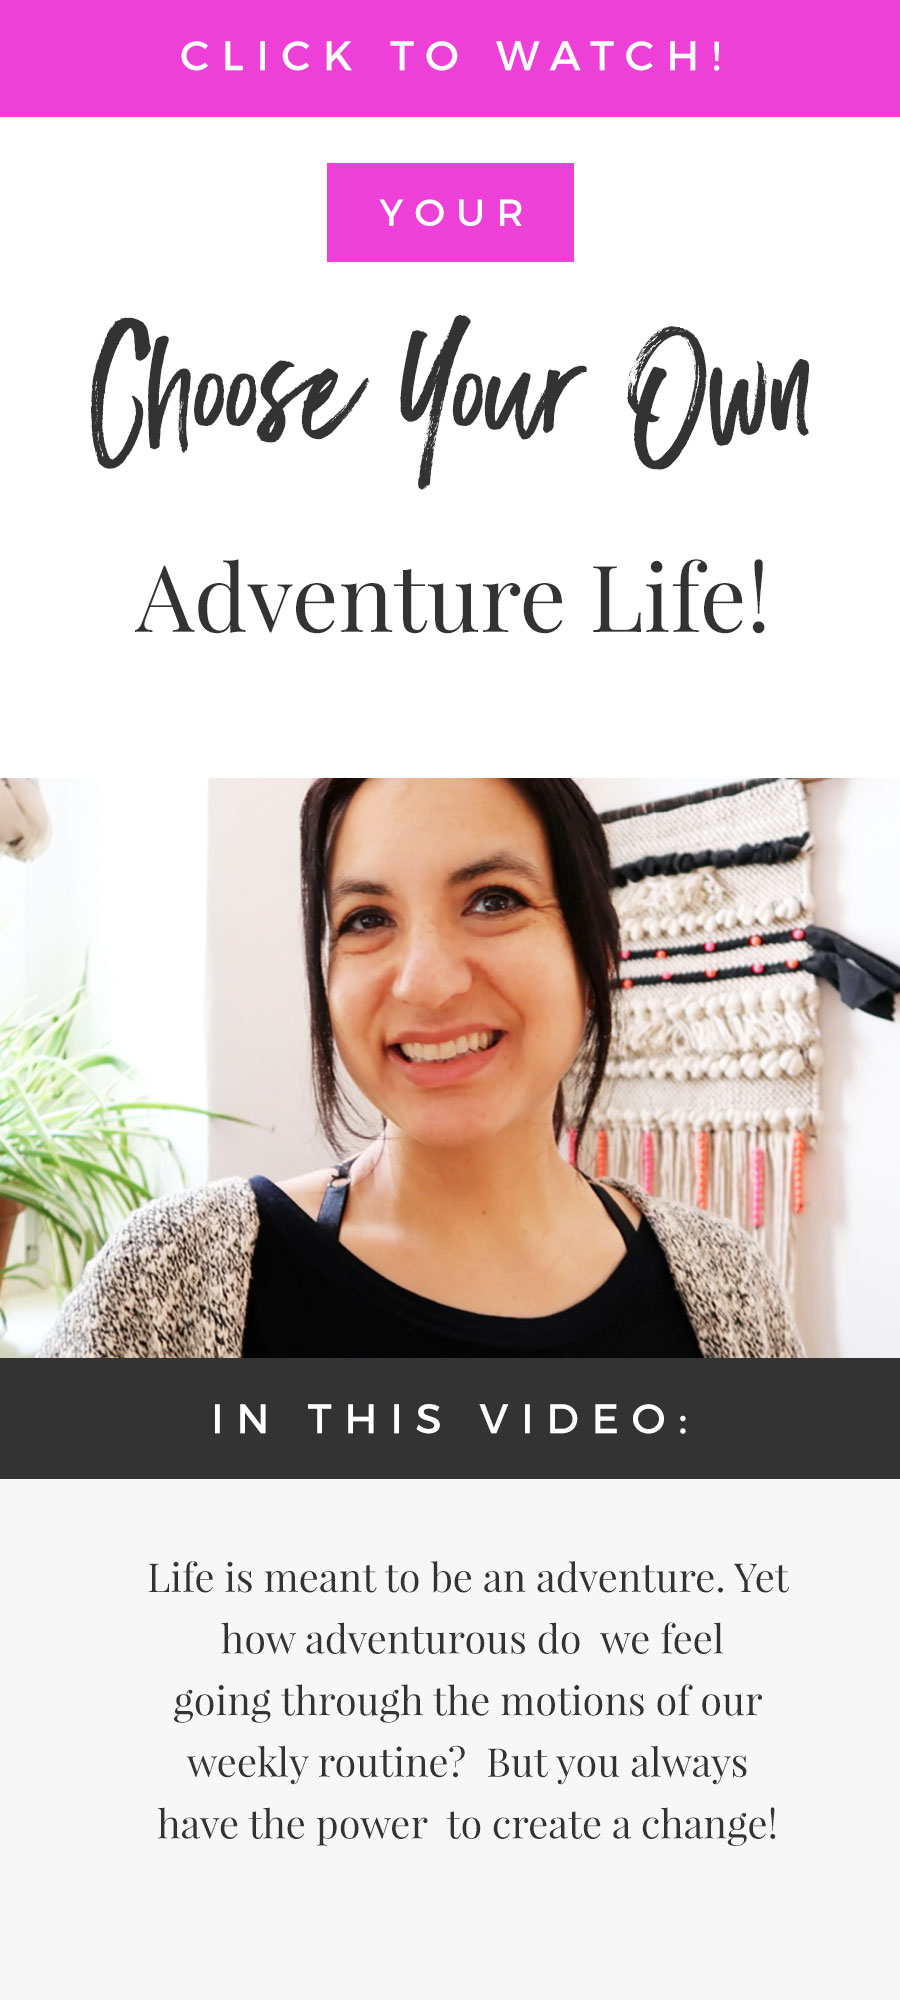 Your Choose Your Own Adventure Life!